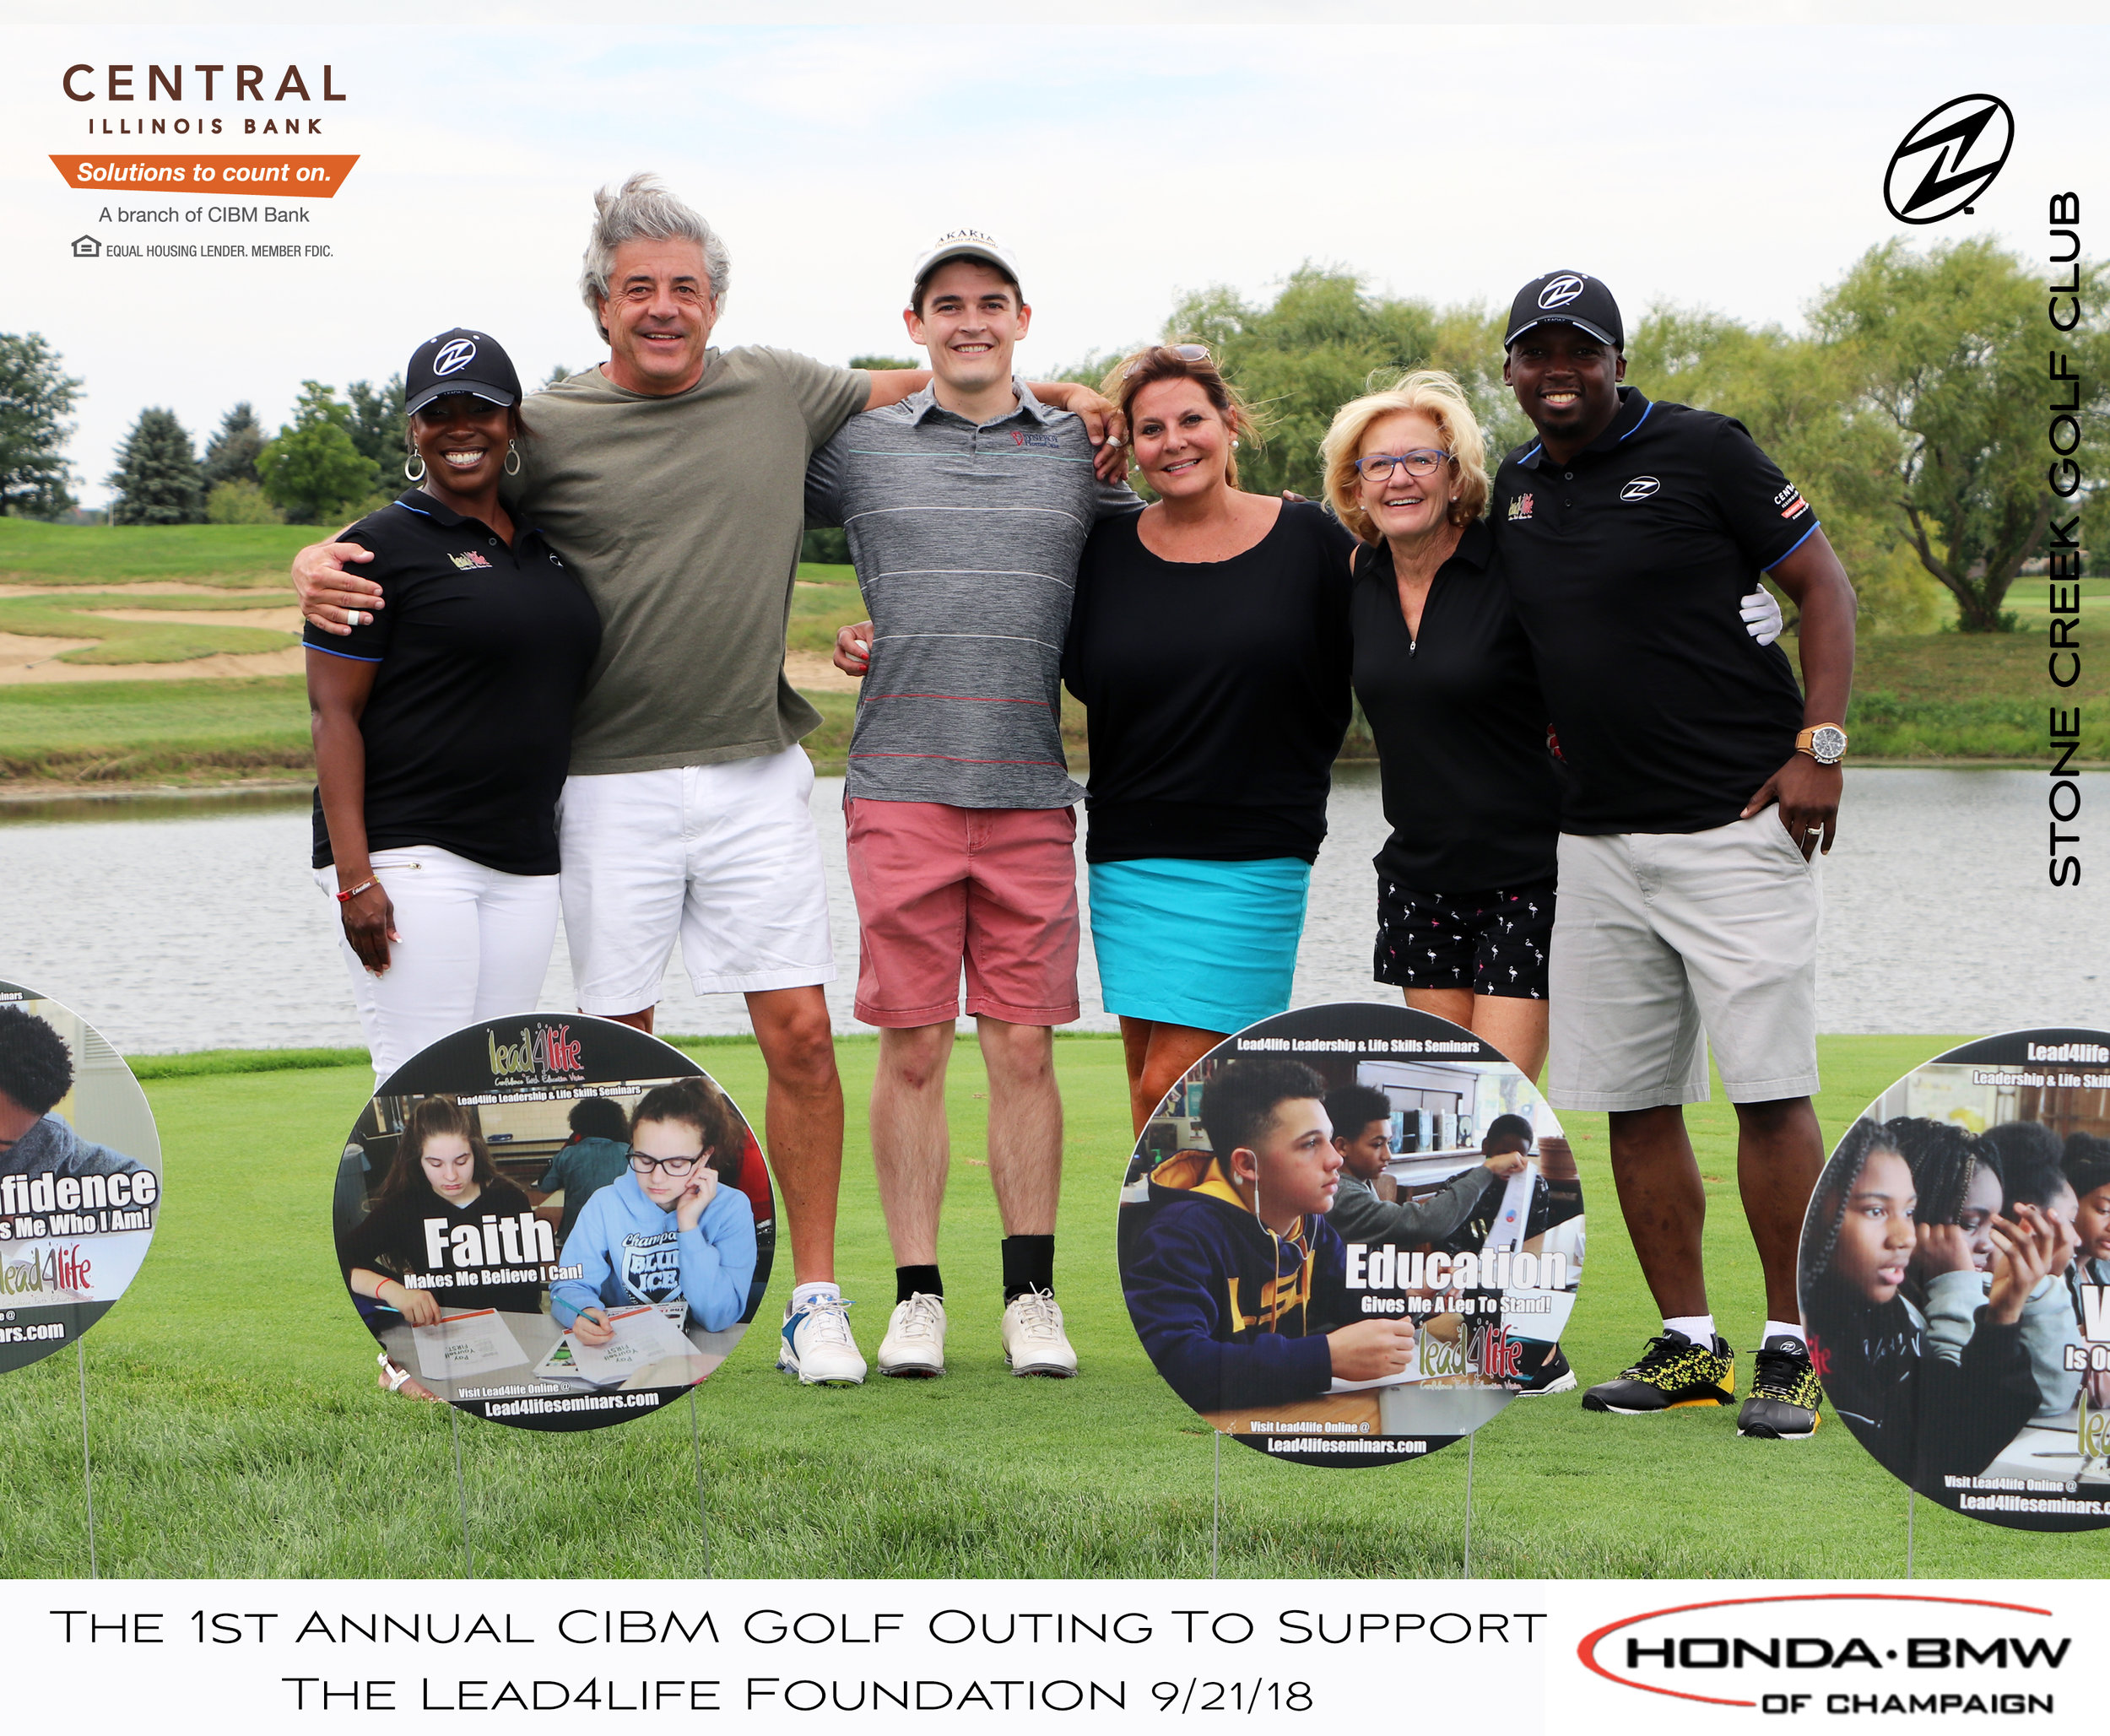 Lead4life Golf Group 7.jpg